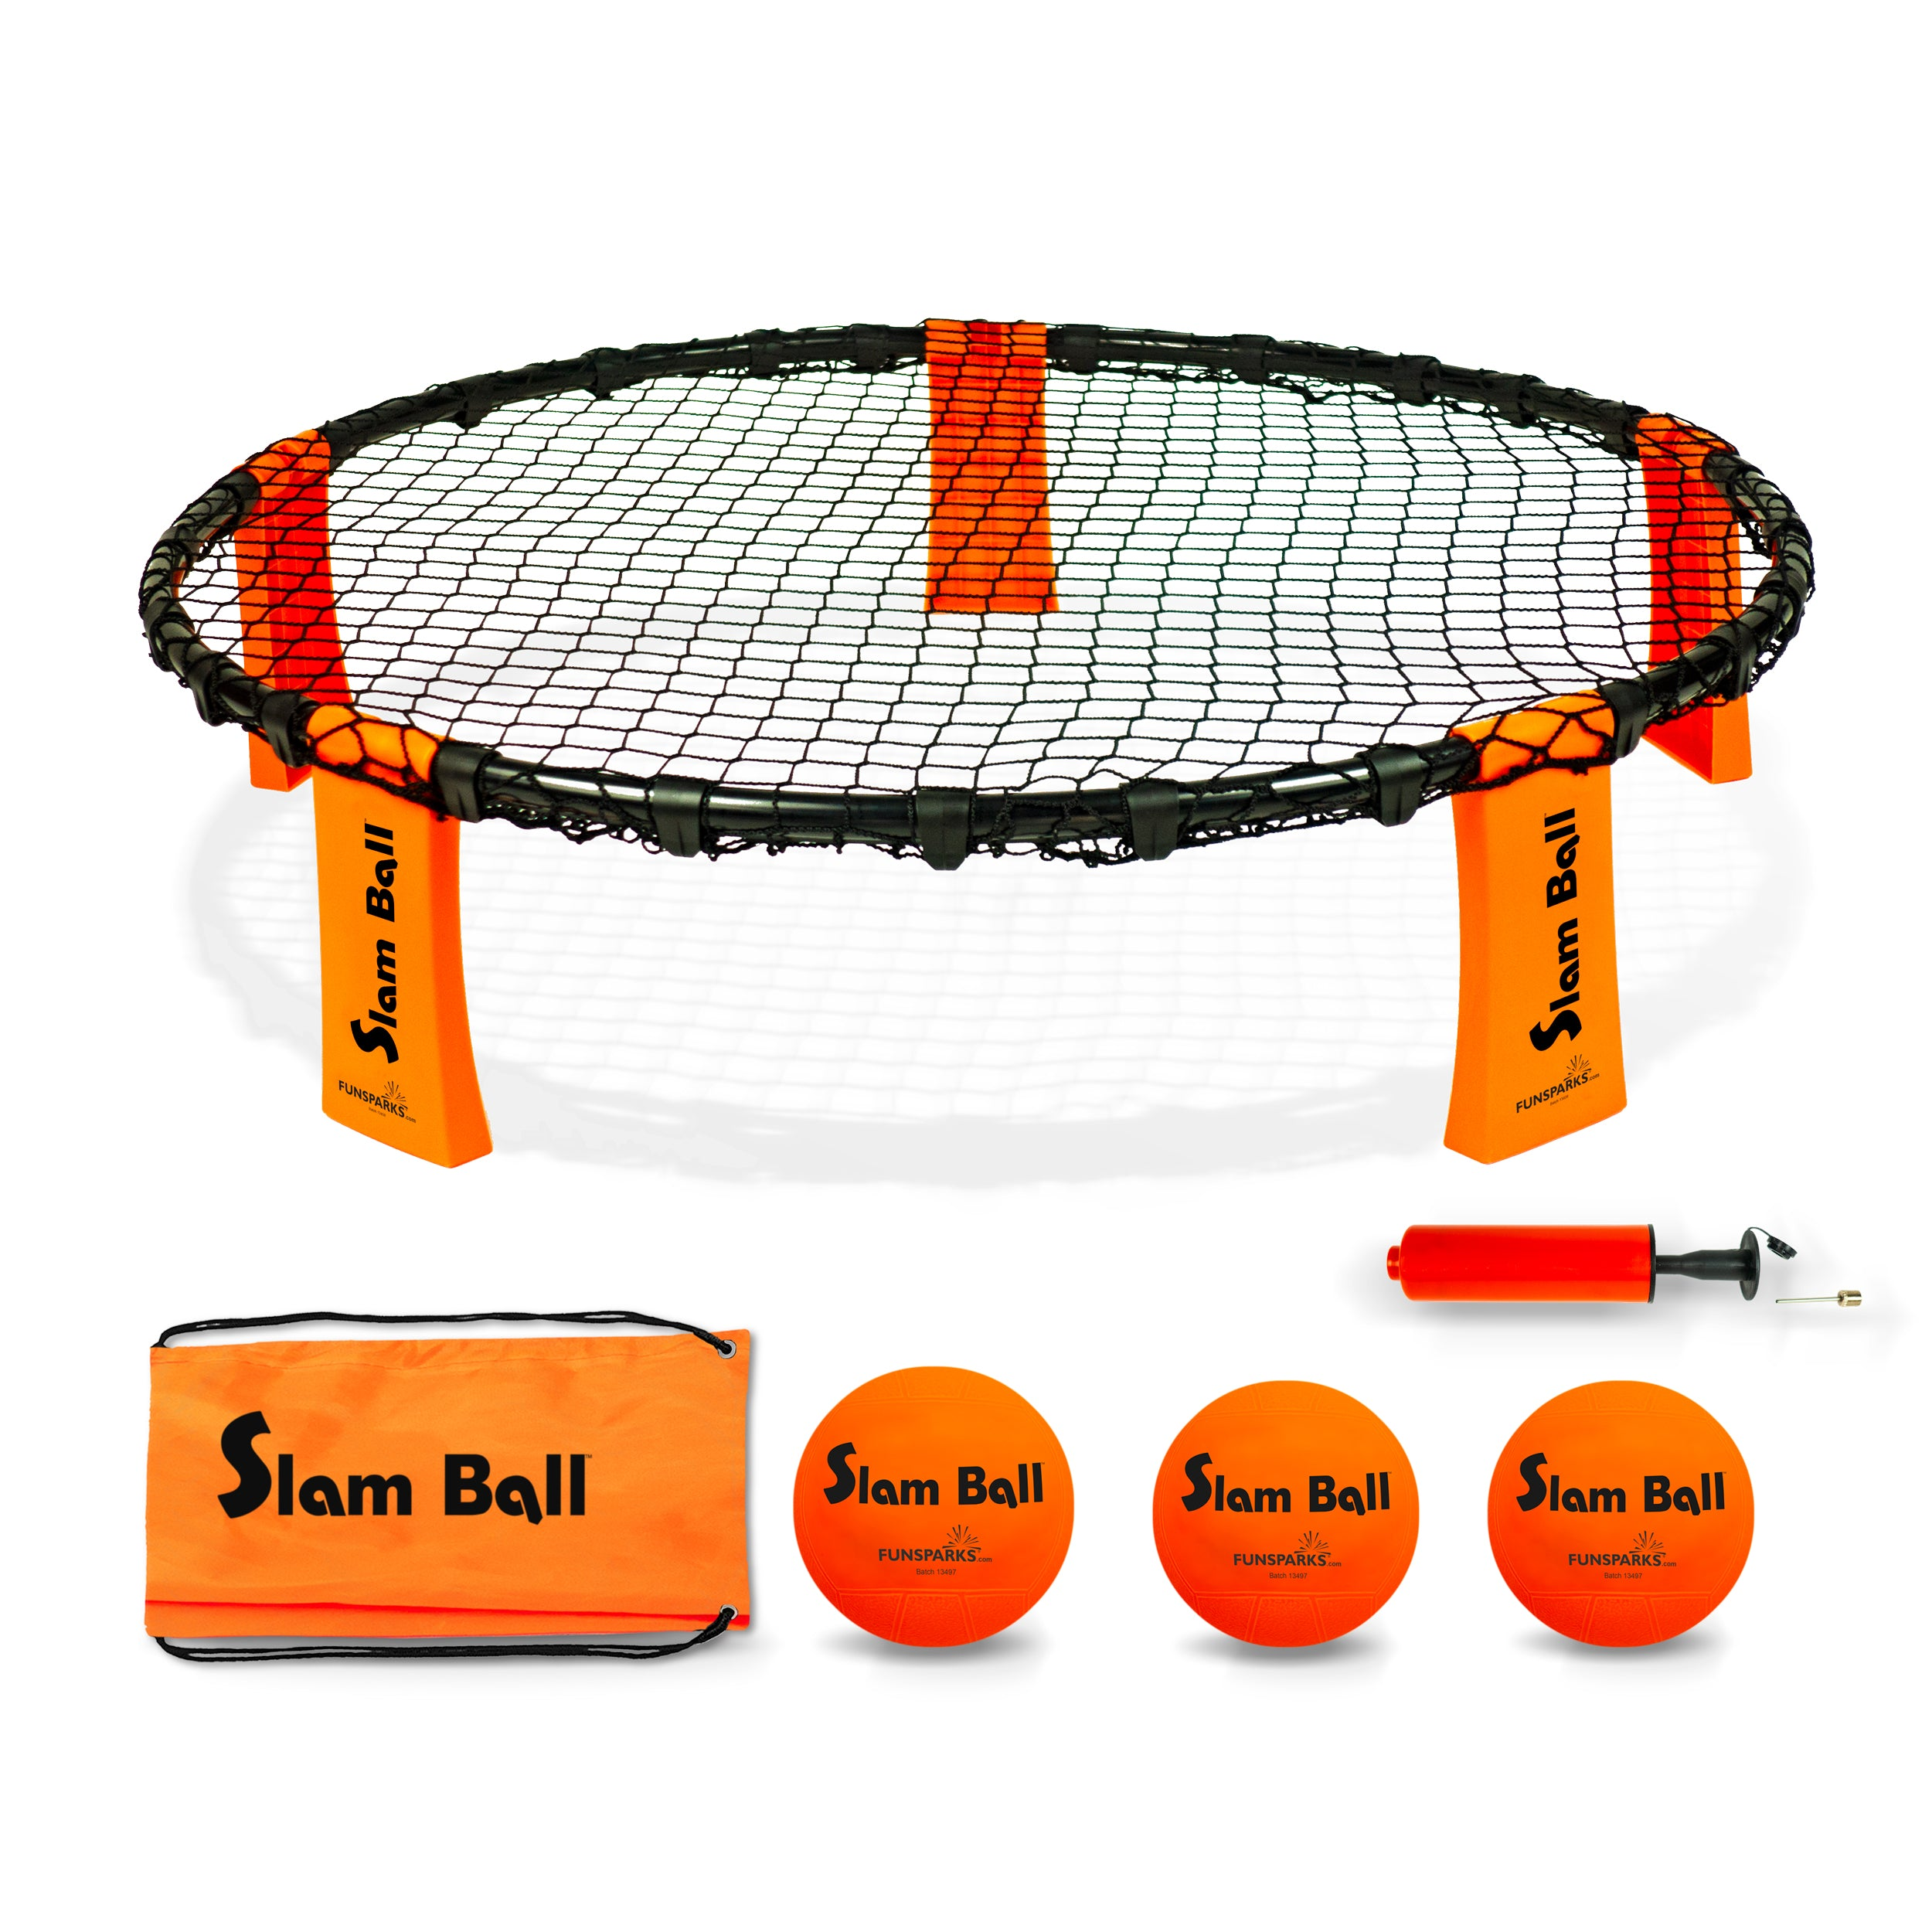 Slam ball spike game from Funsparks with 3 balls, ball pump, carry bag and net